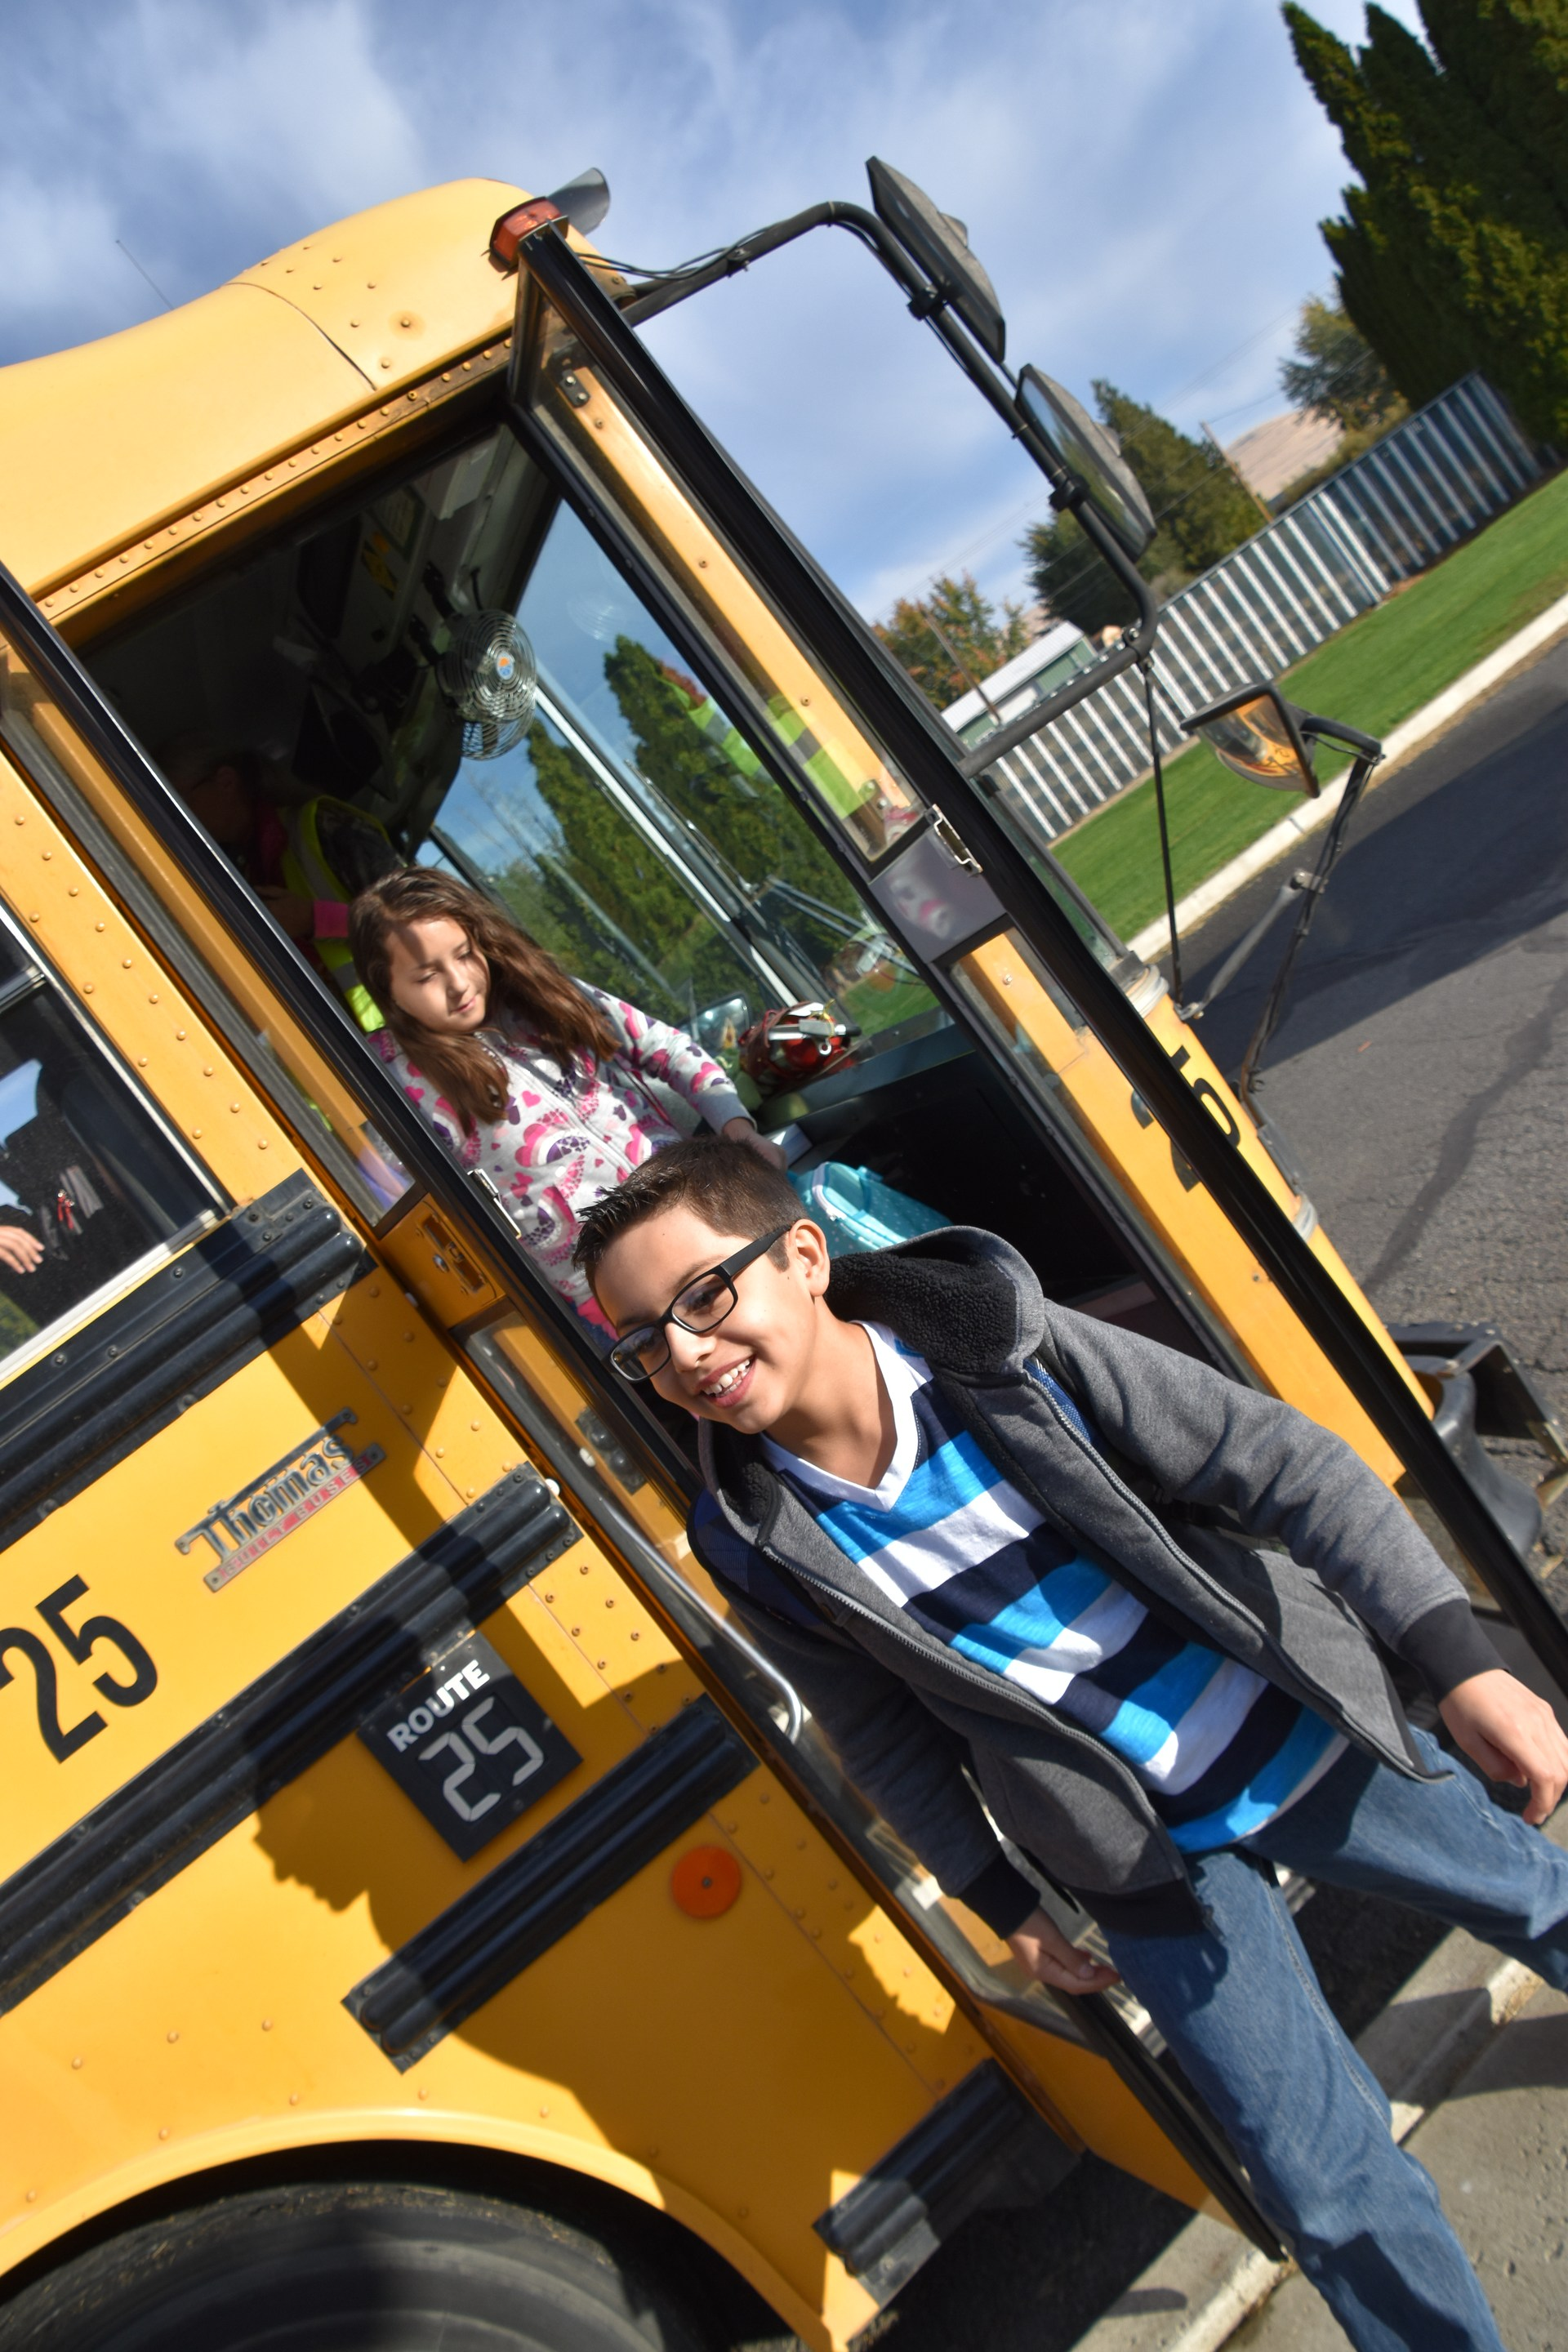 East Valley Elementary students getting off of the school bus.